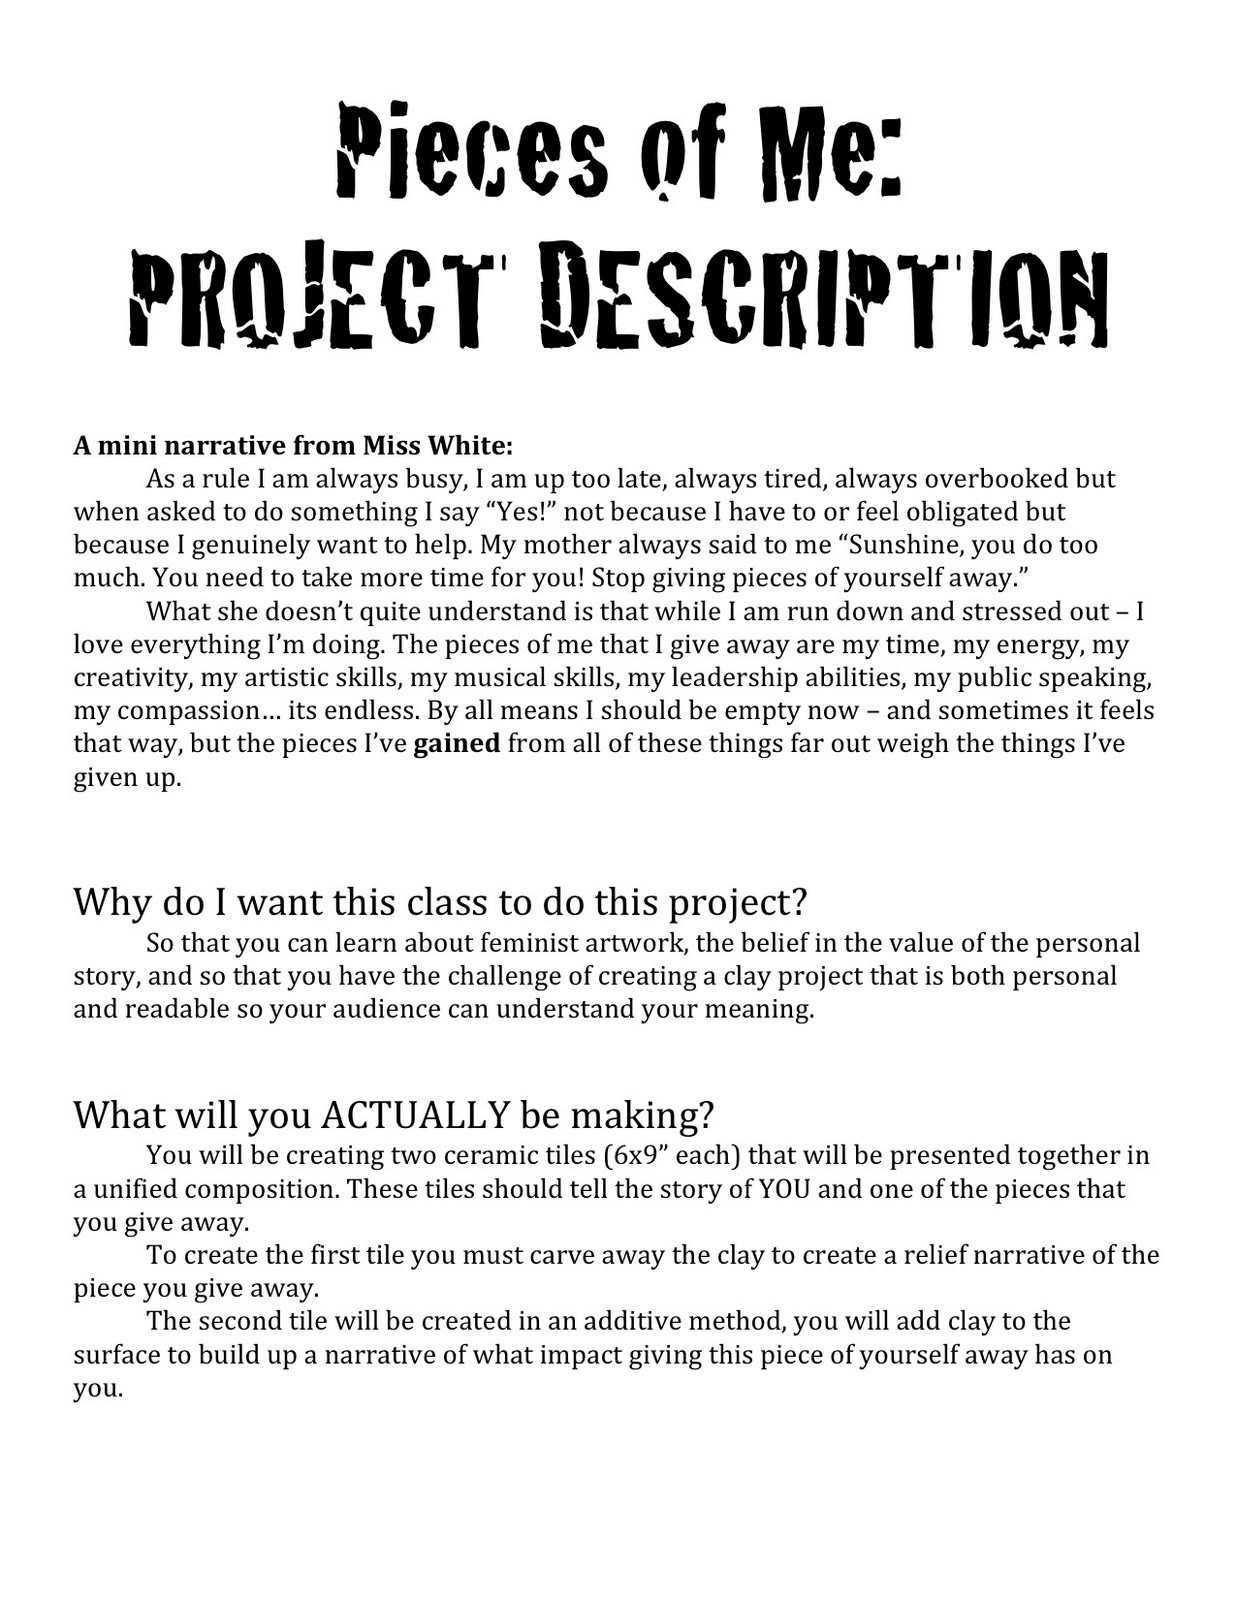 example of a project packet that includes graphic organizers